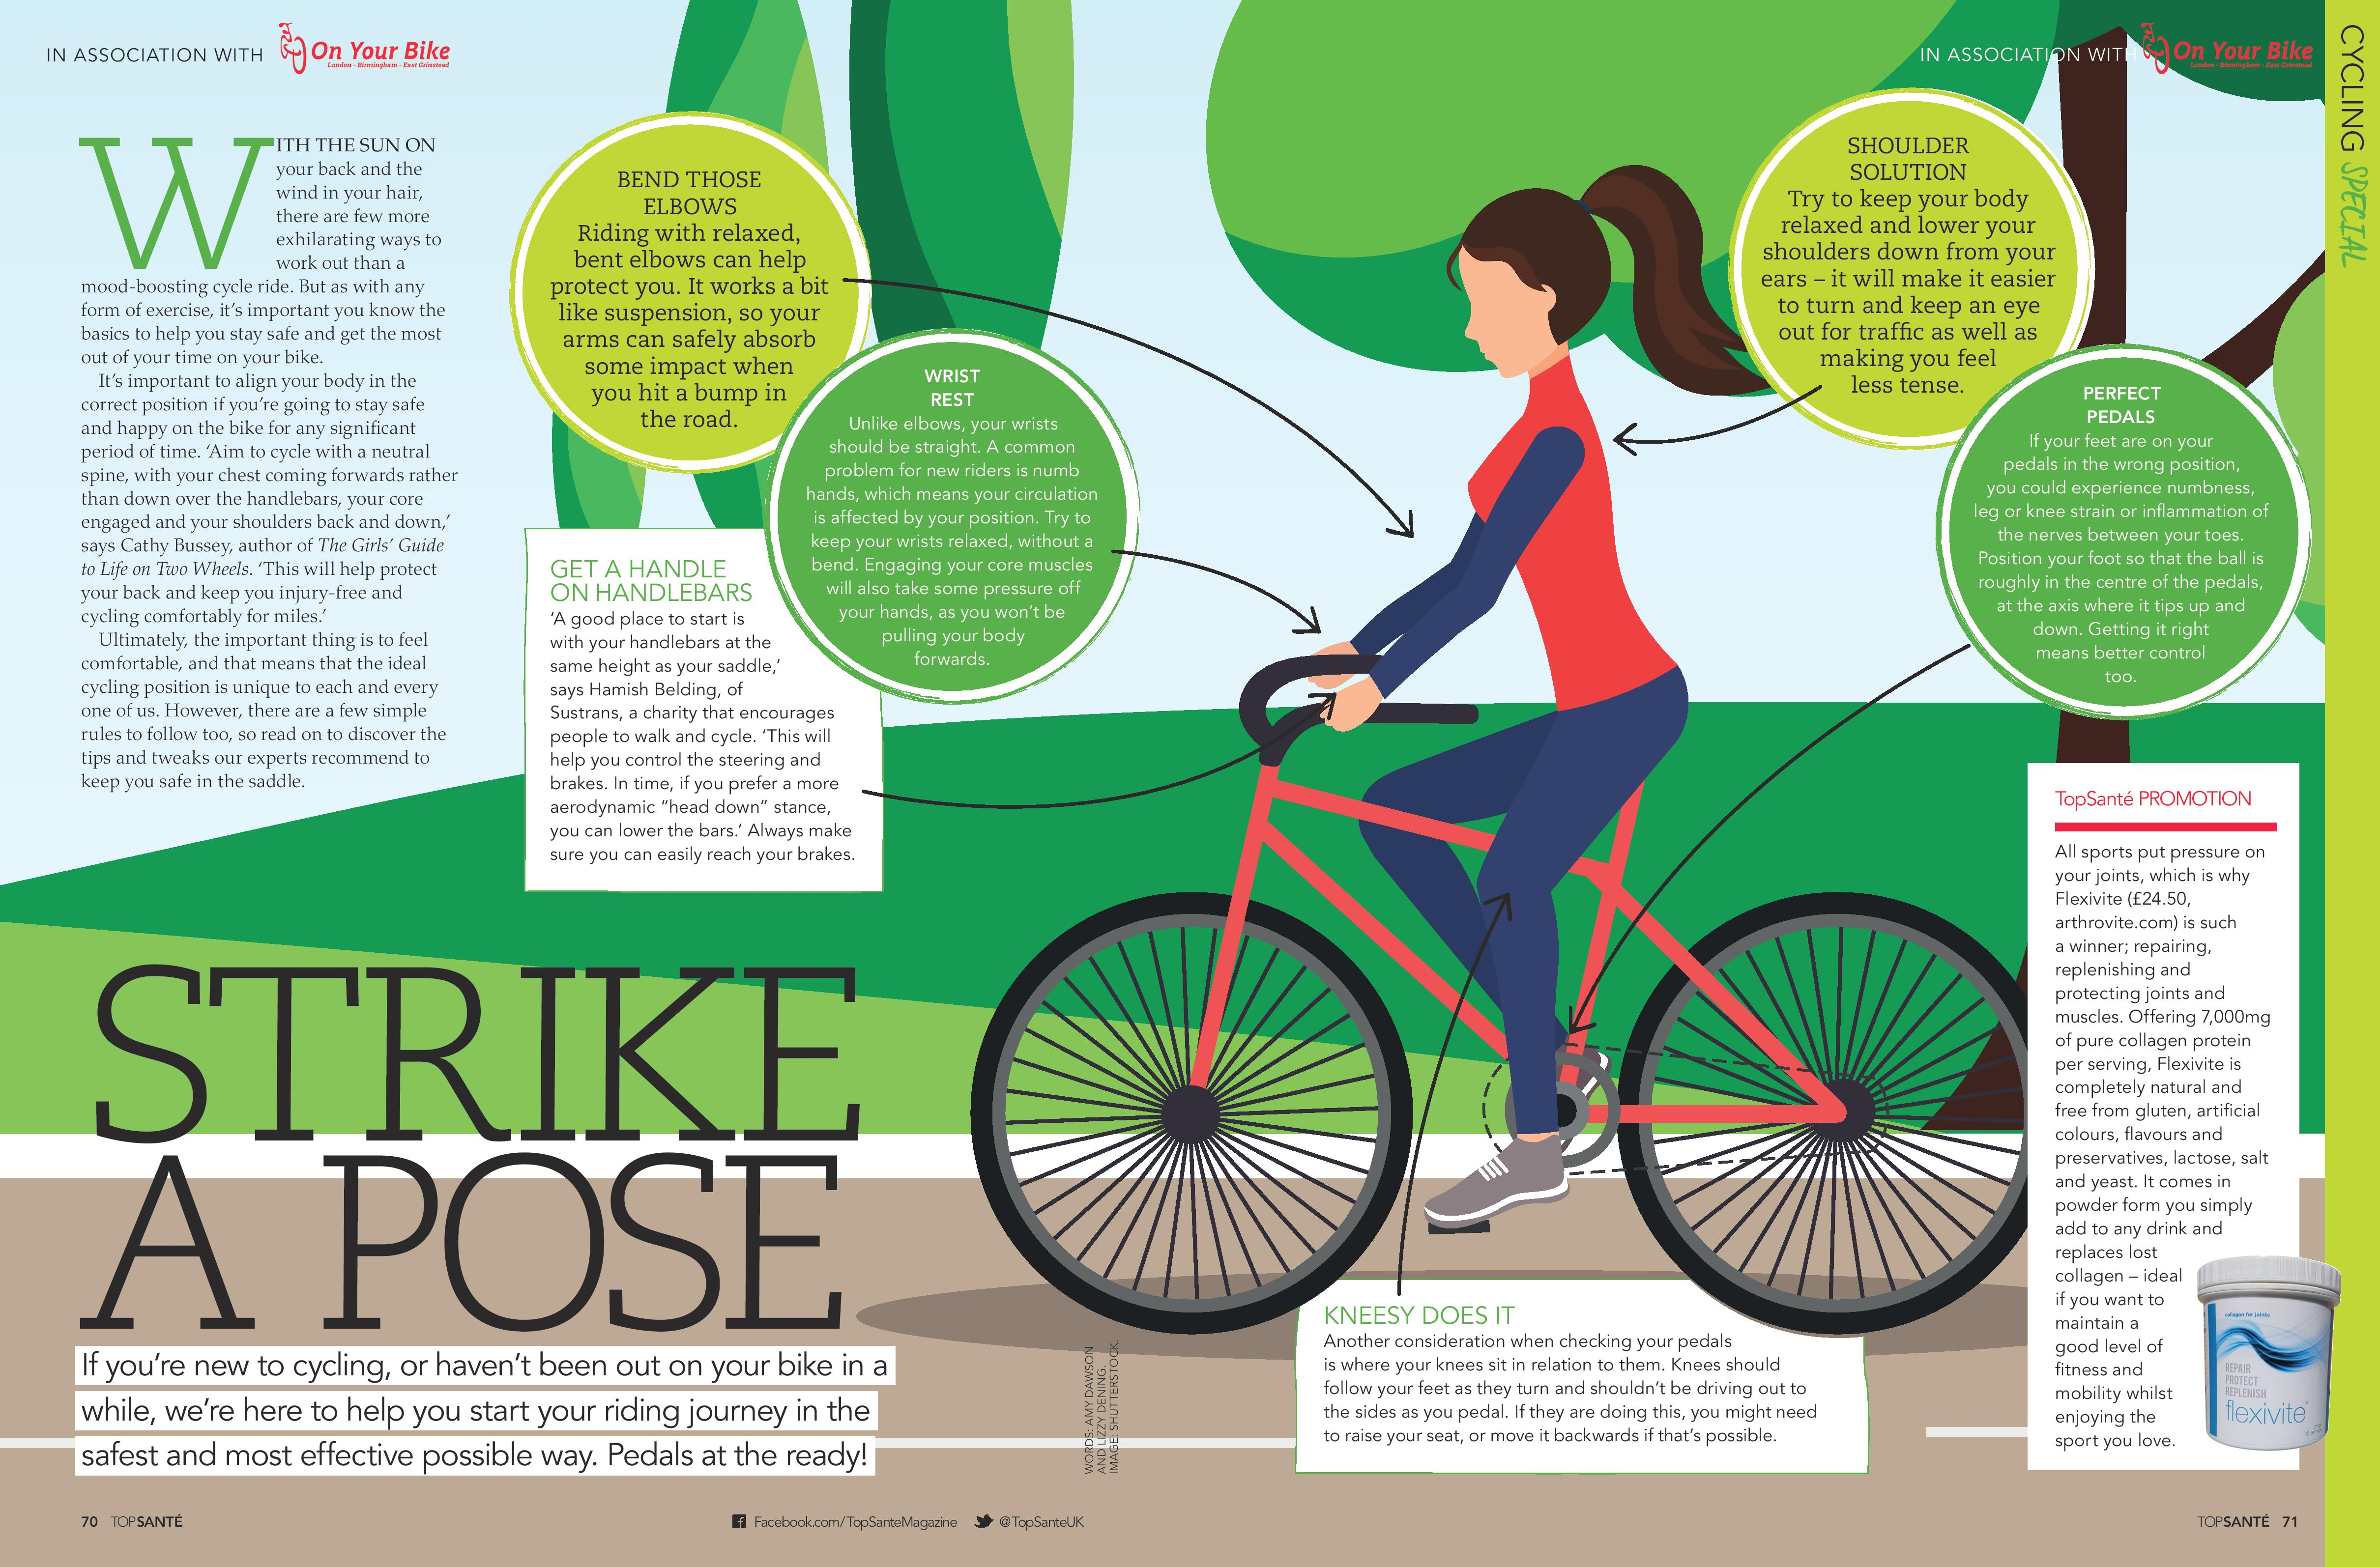 On Your Bike: Cycling Posture (Top Sante Cycling Special, Jun 2018)